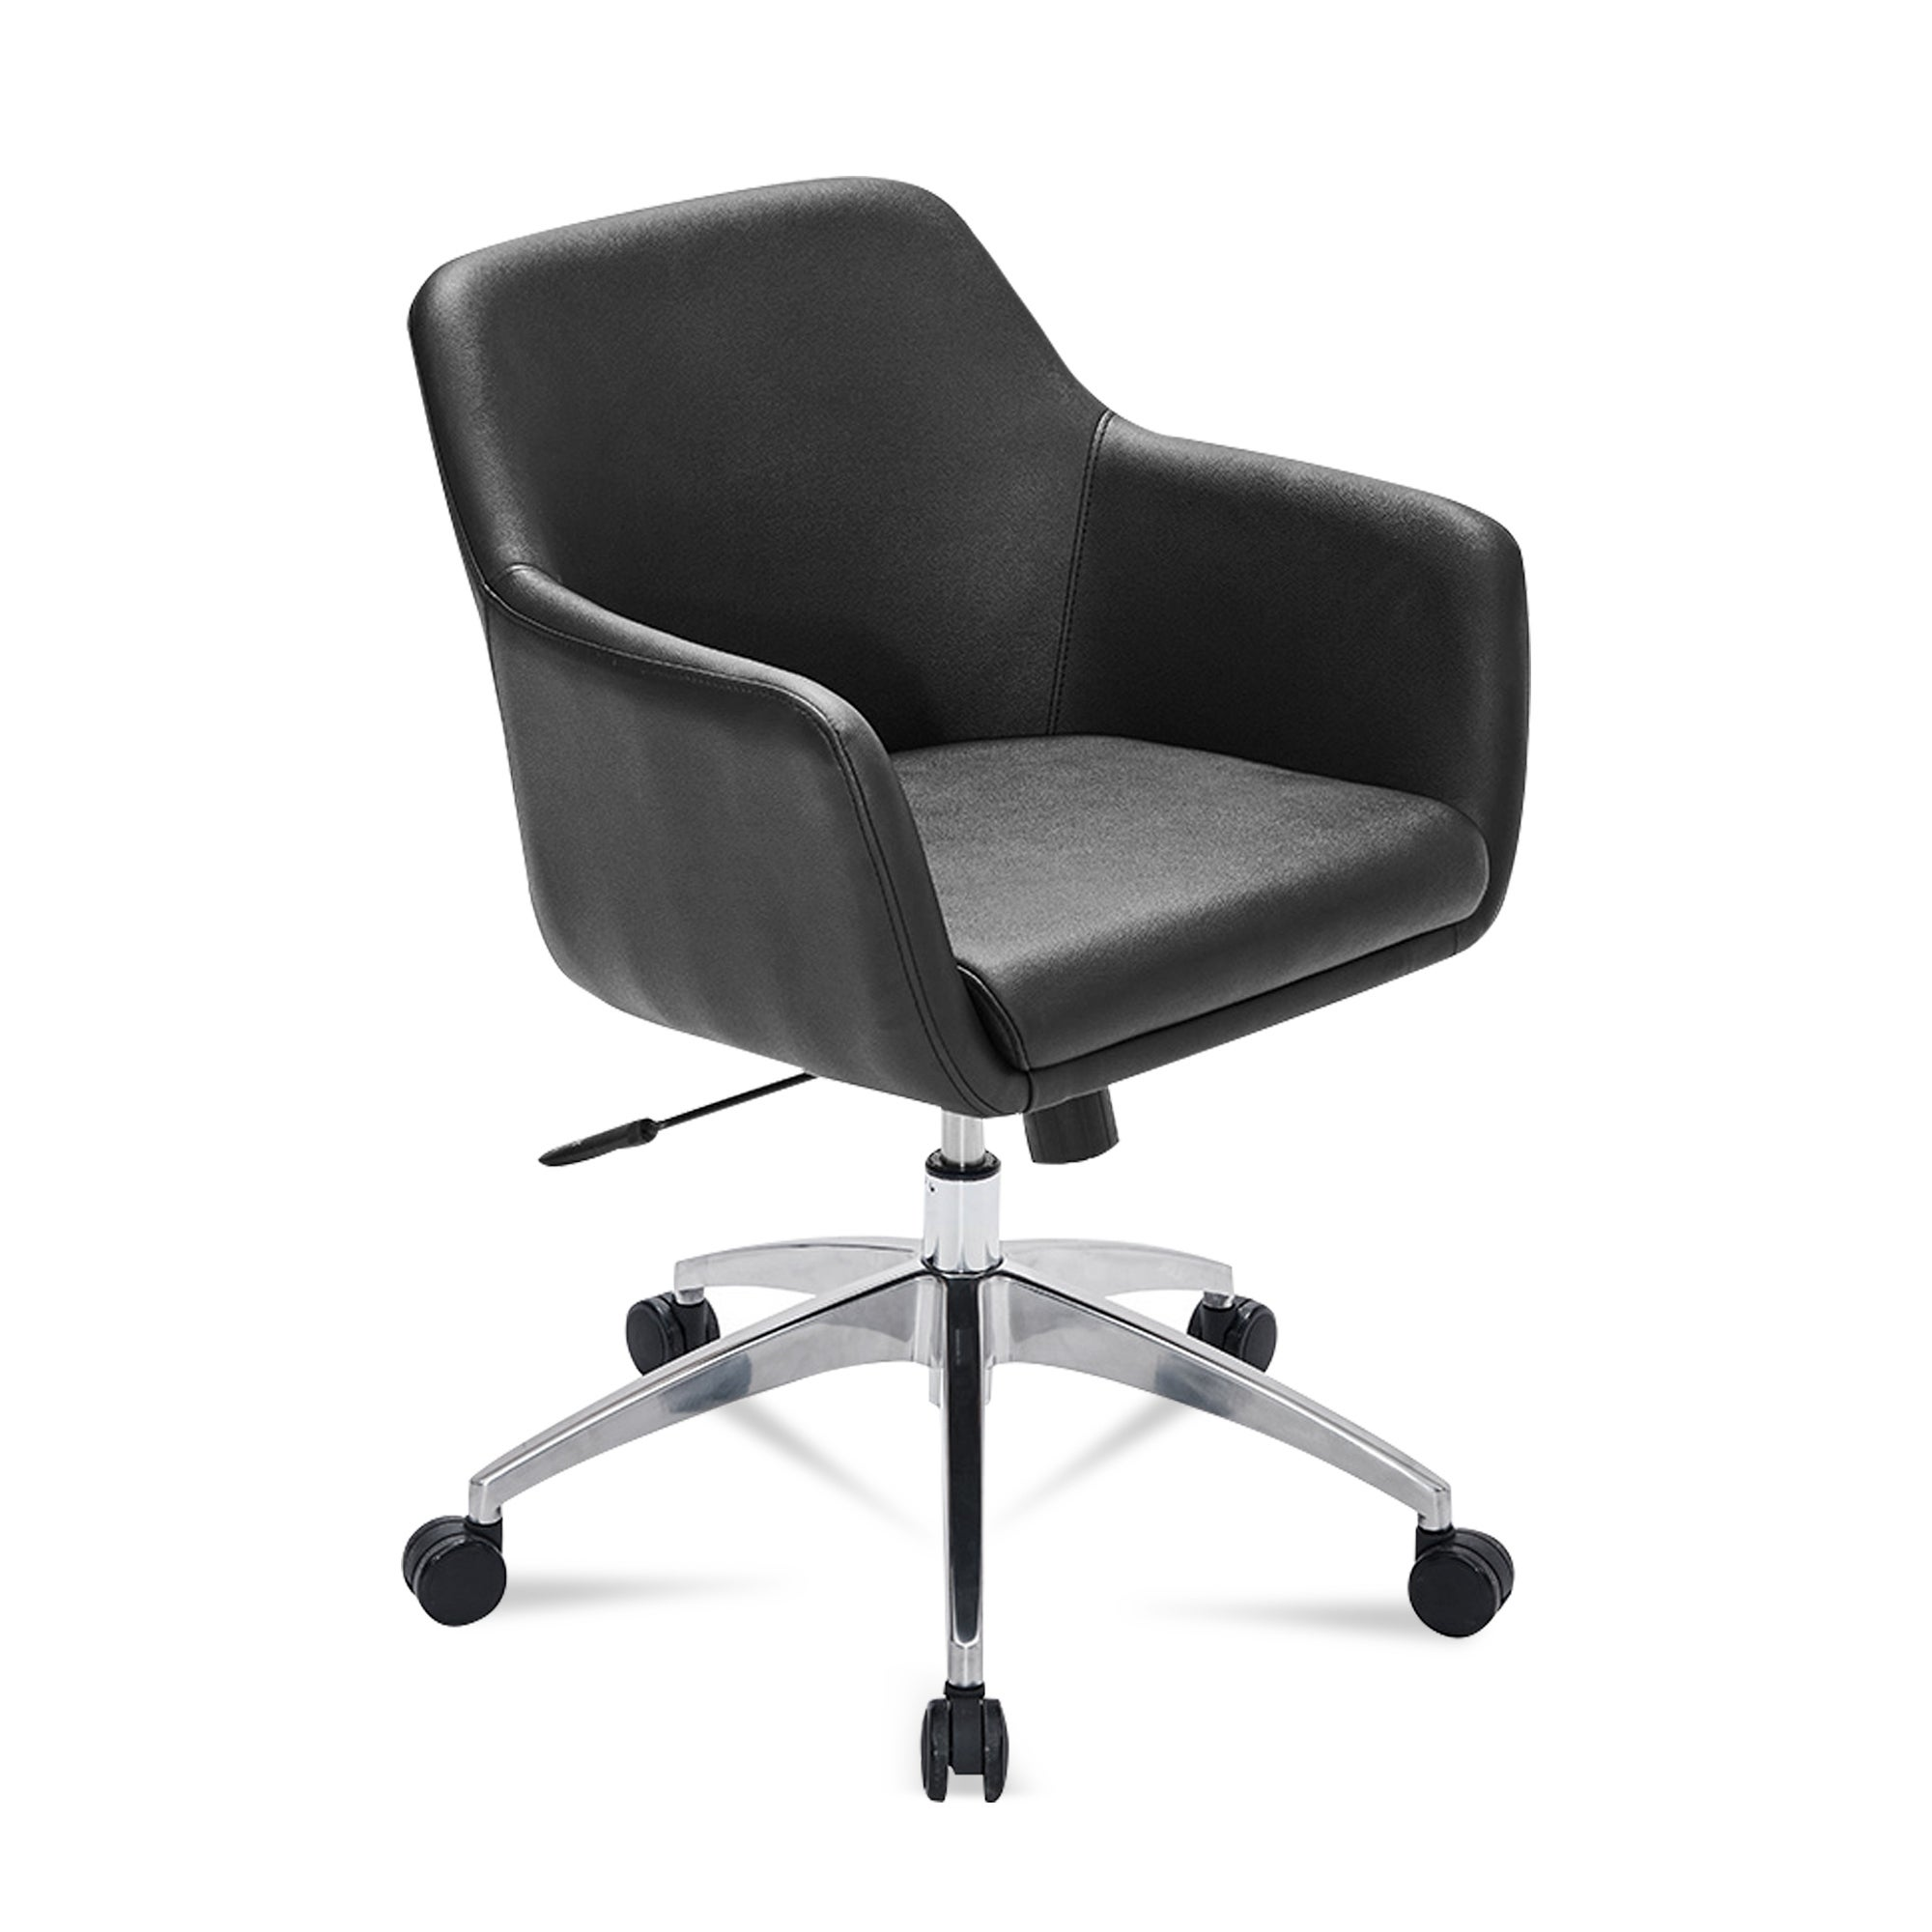 Conference Room Armchair & Meeting Chairs